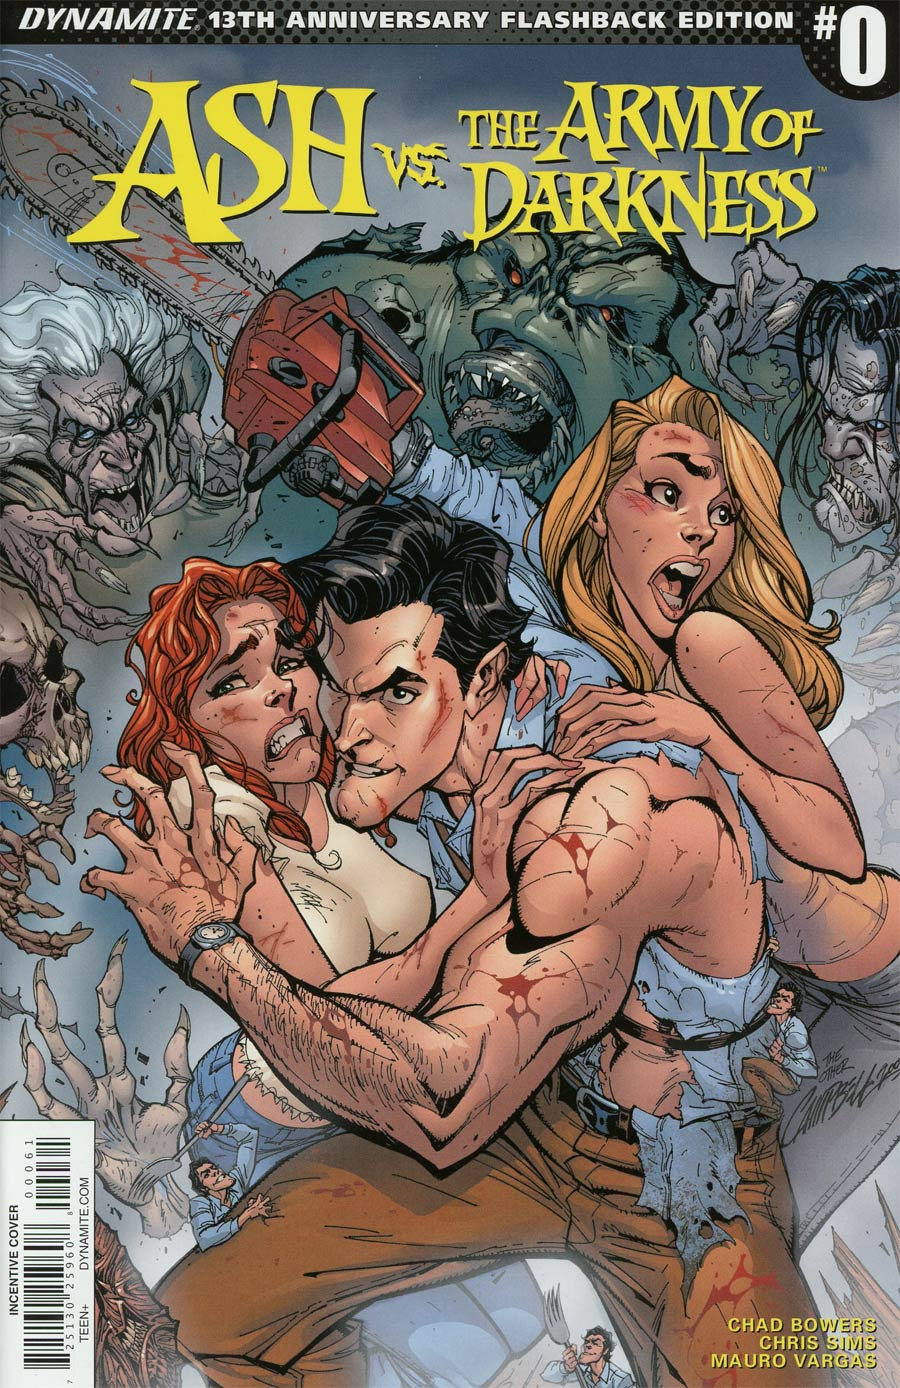 Ash vs The Army Of Darkness #0 Cover F Incentive J Scott Campbell 13th Anniversary Flashback Variant Cover